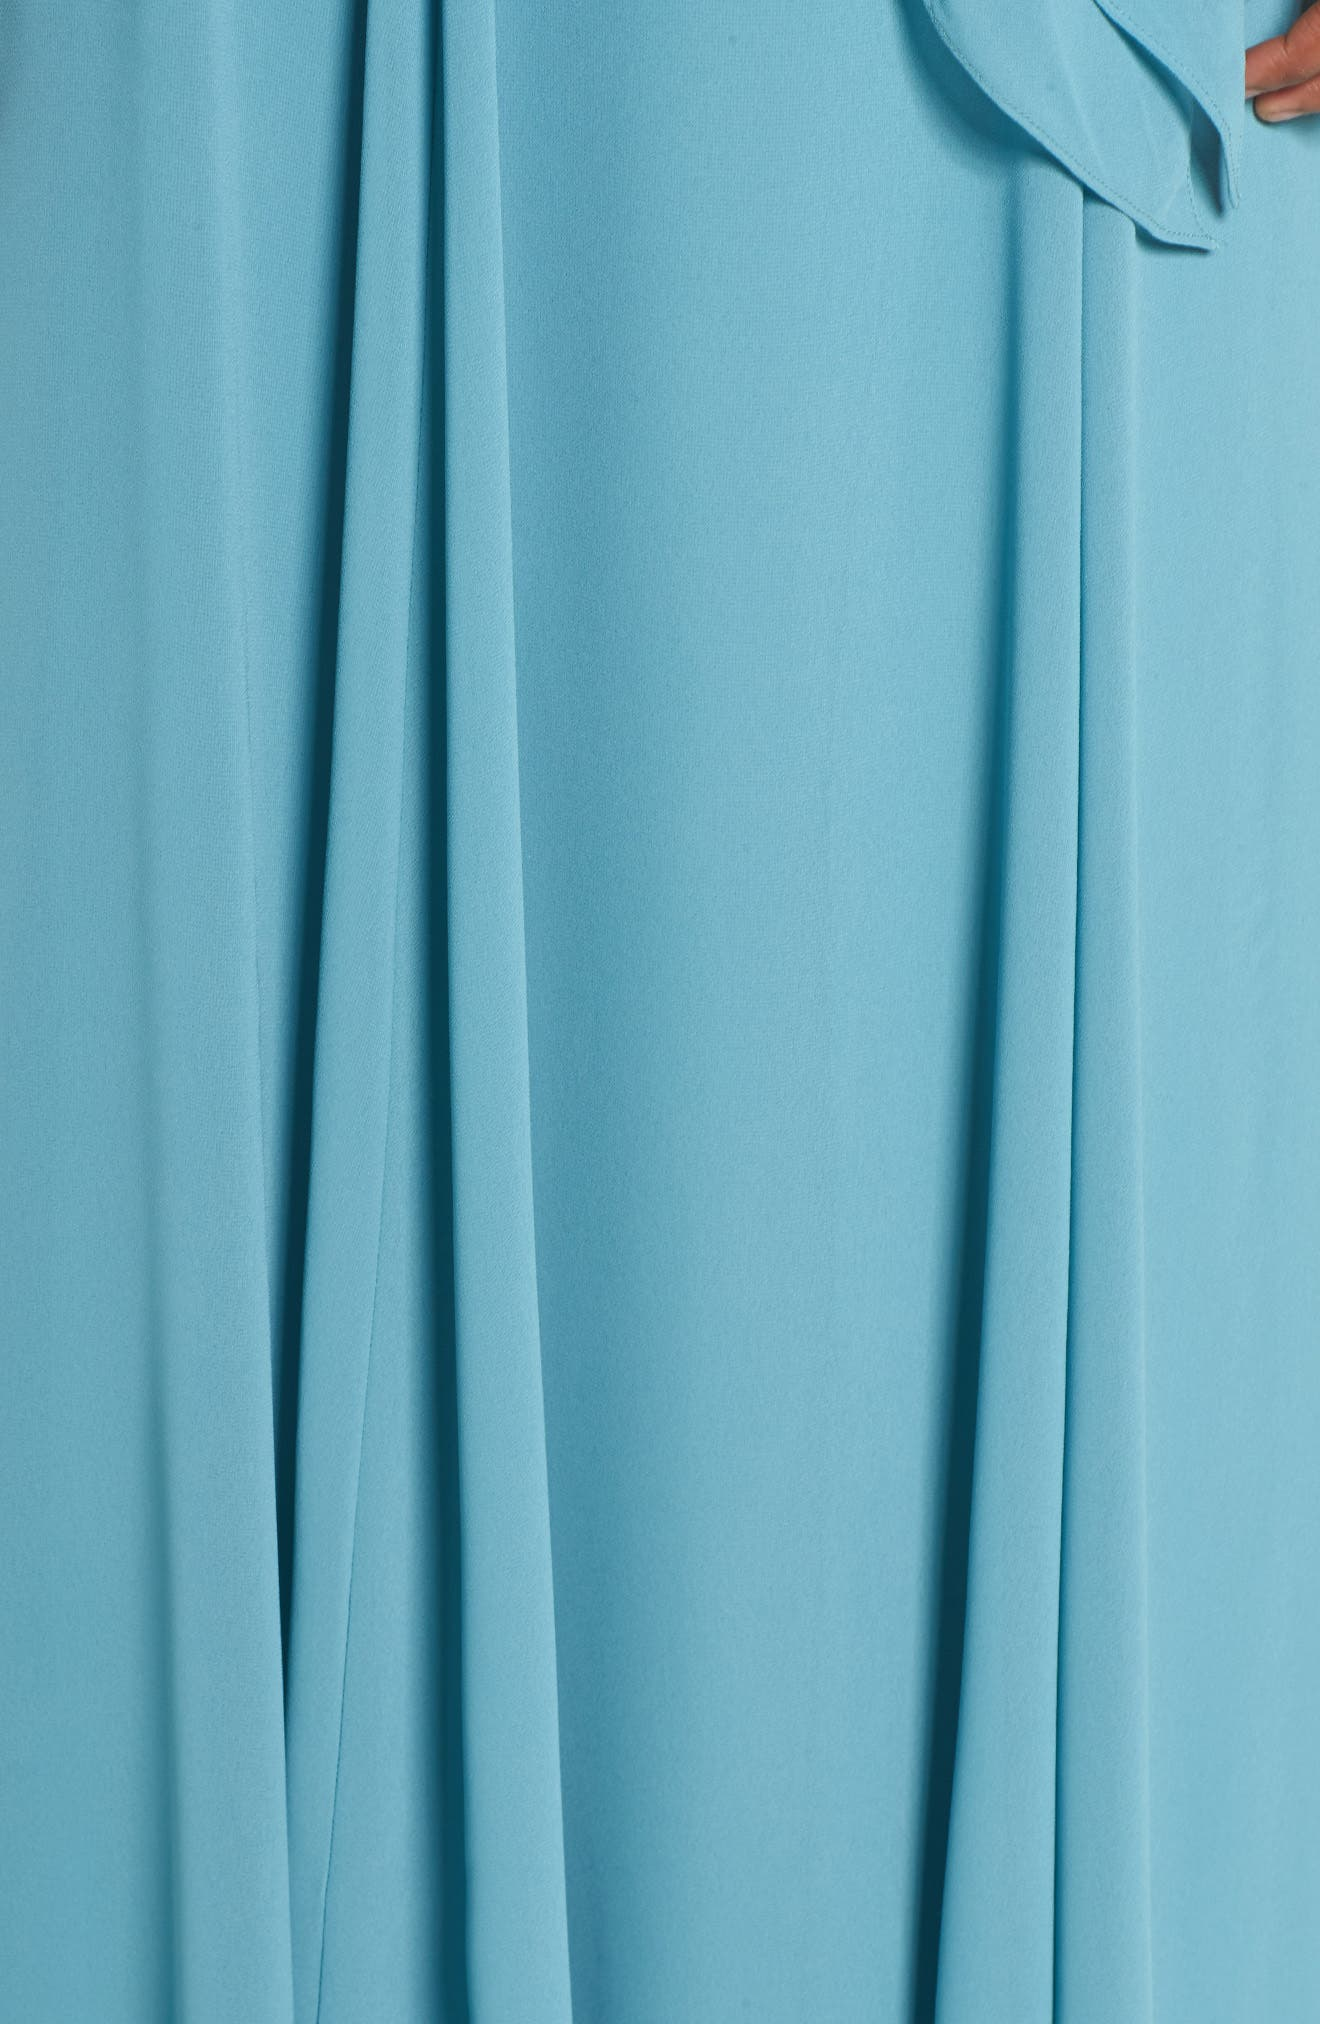 Kyra Chiffon Halter Gown,                             Alternate thumbnail 5, color,                             Teal